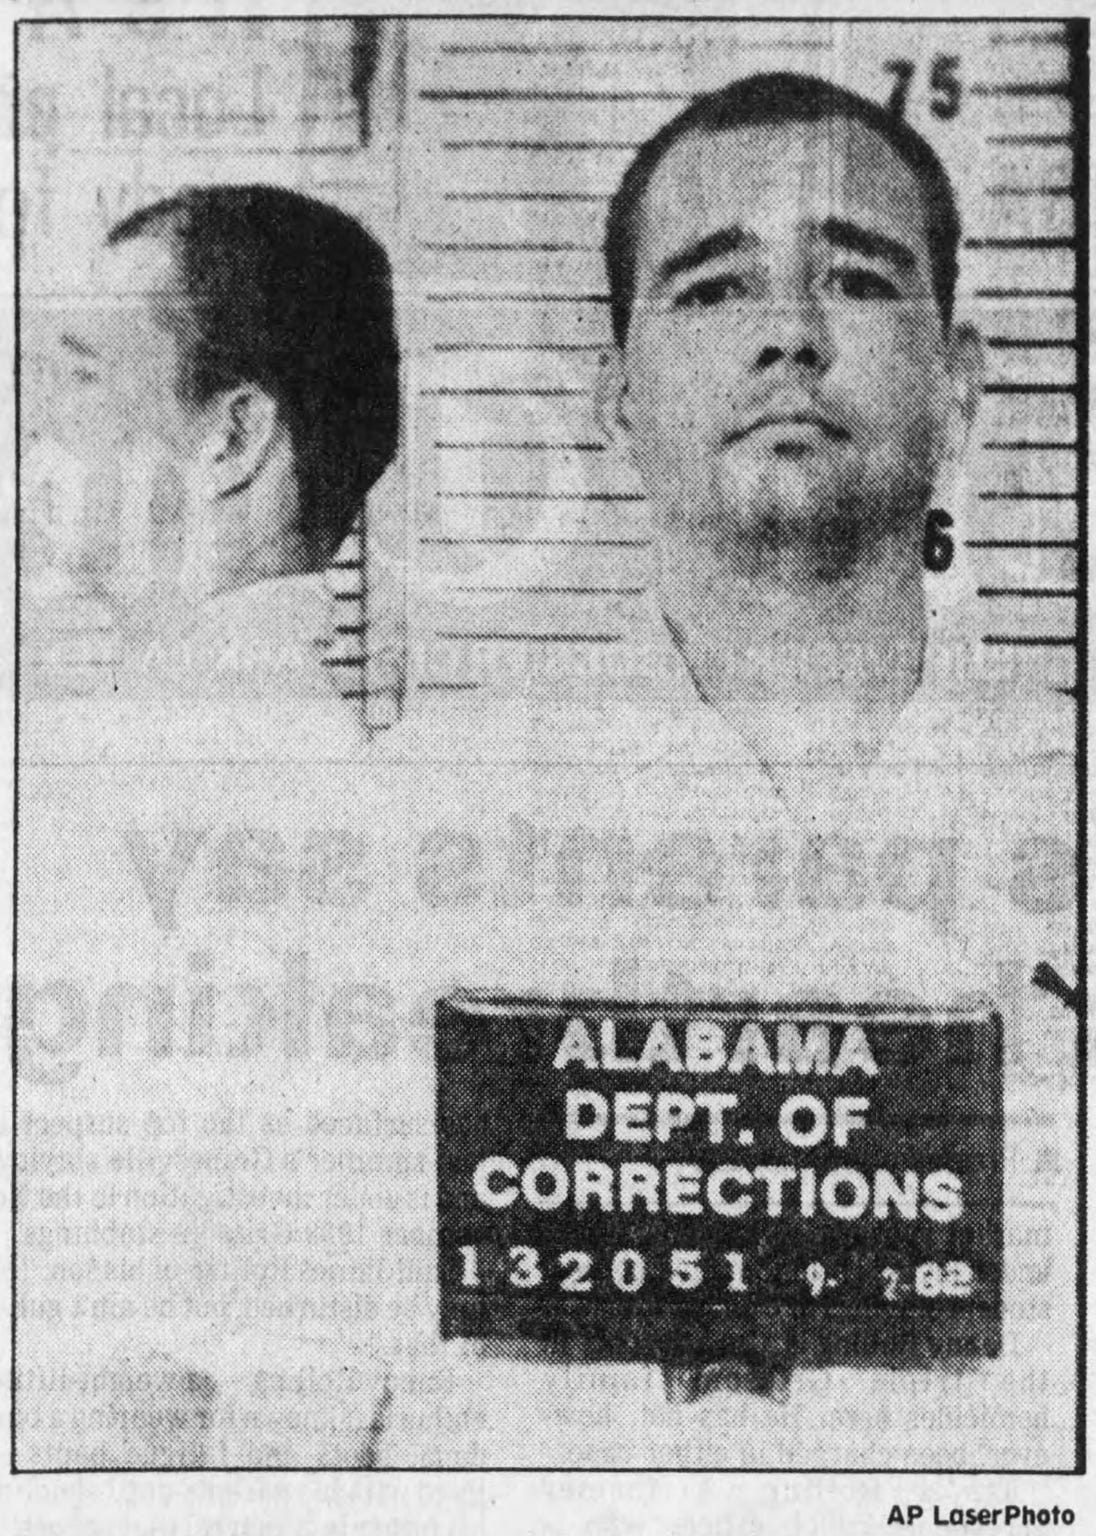 Pictured is a 1982 file photo of Danny Harold Rolling used in a 1991 report in The Times. Rolling served time in Alabama prisons for a Montgomery robbery in 1979.